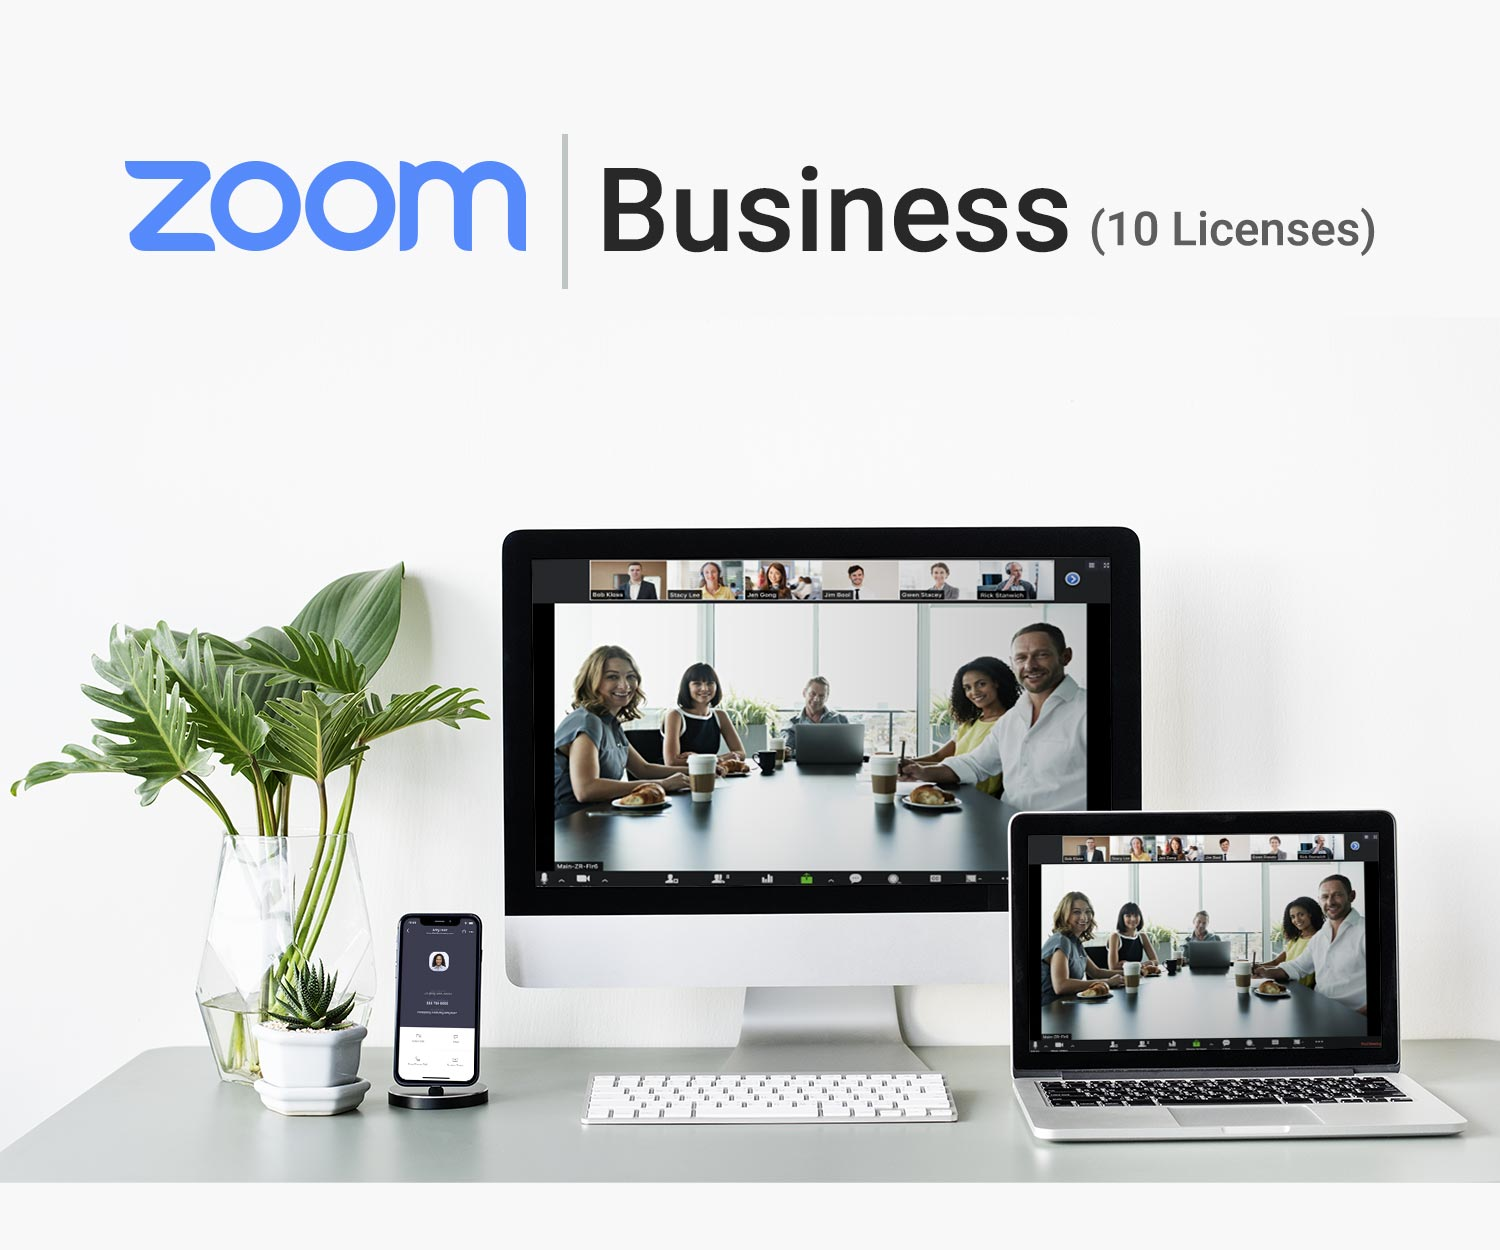 Zoom Business 10 Licenses